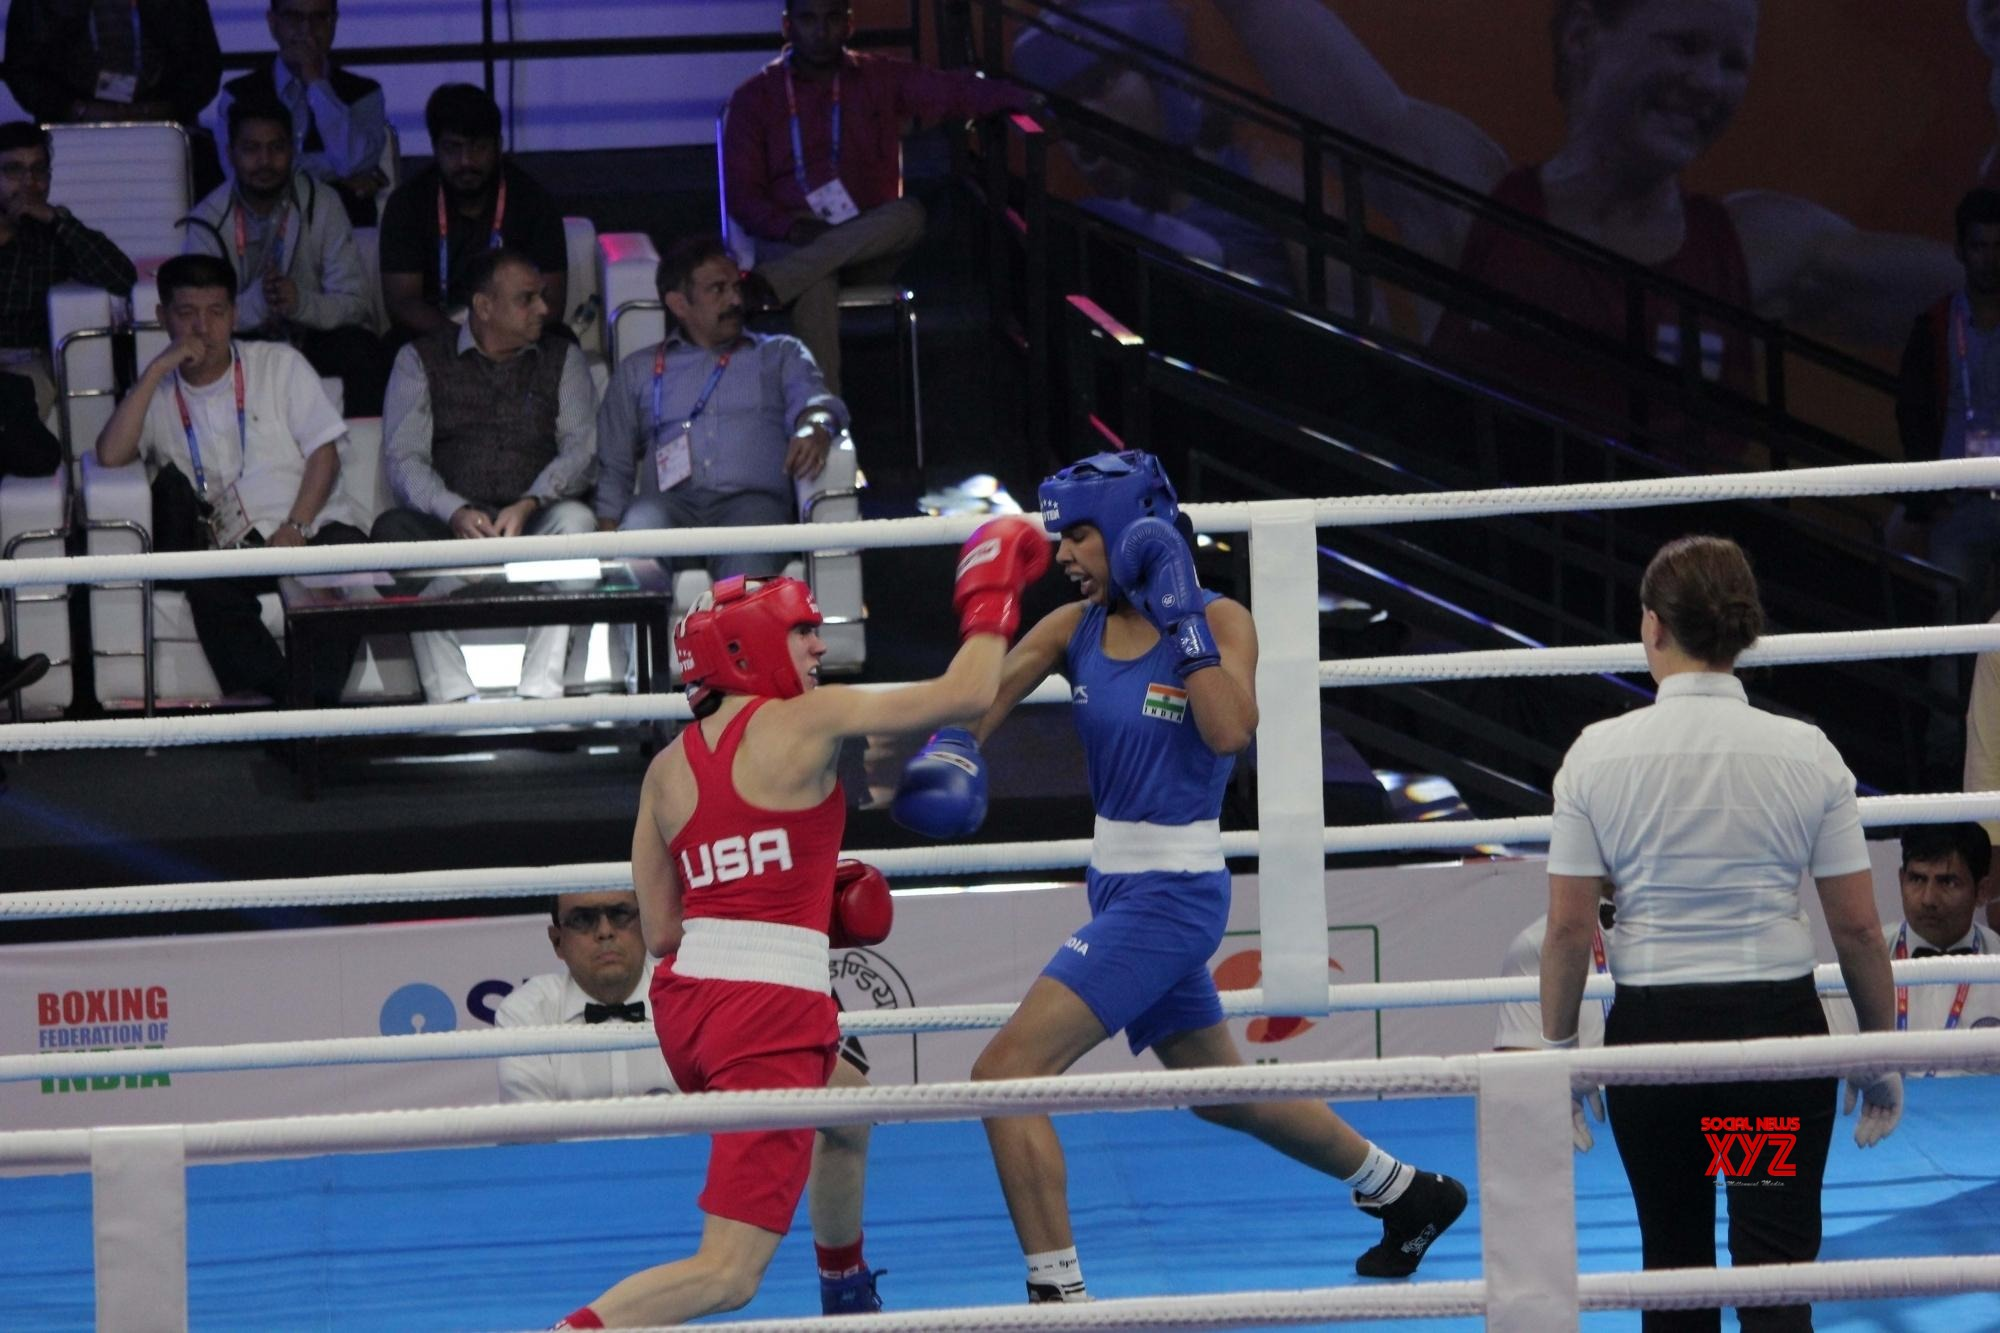 Sarita Devi, Manisha Mouna advance to pre-quarters at World Boxing Championships